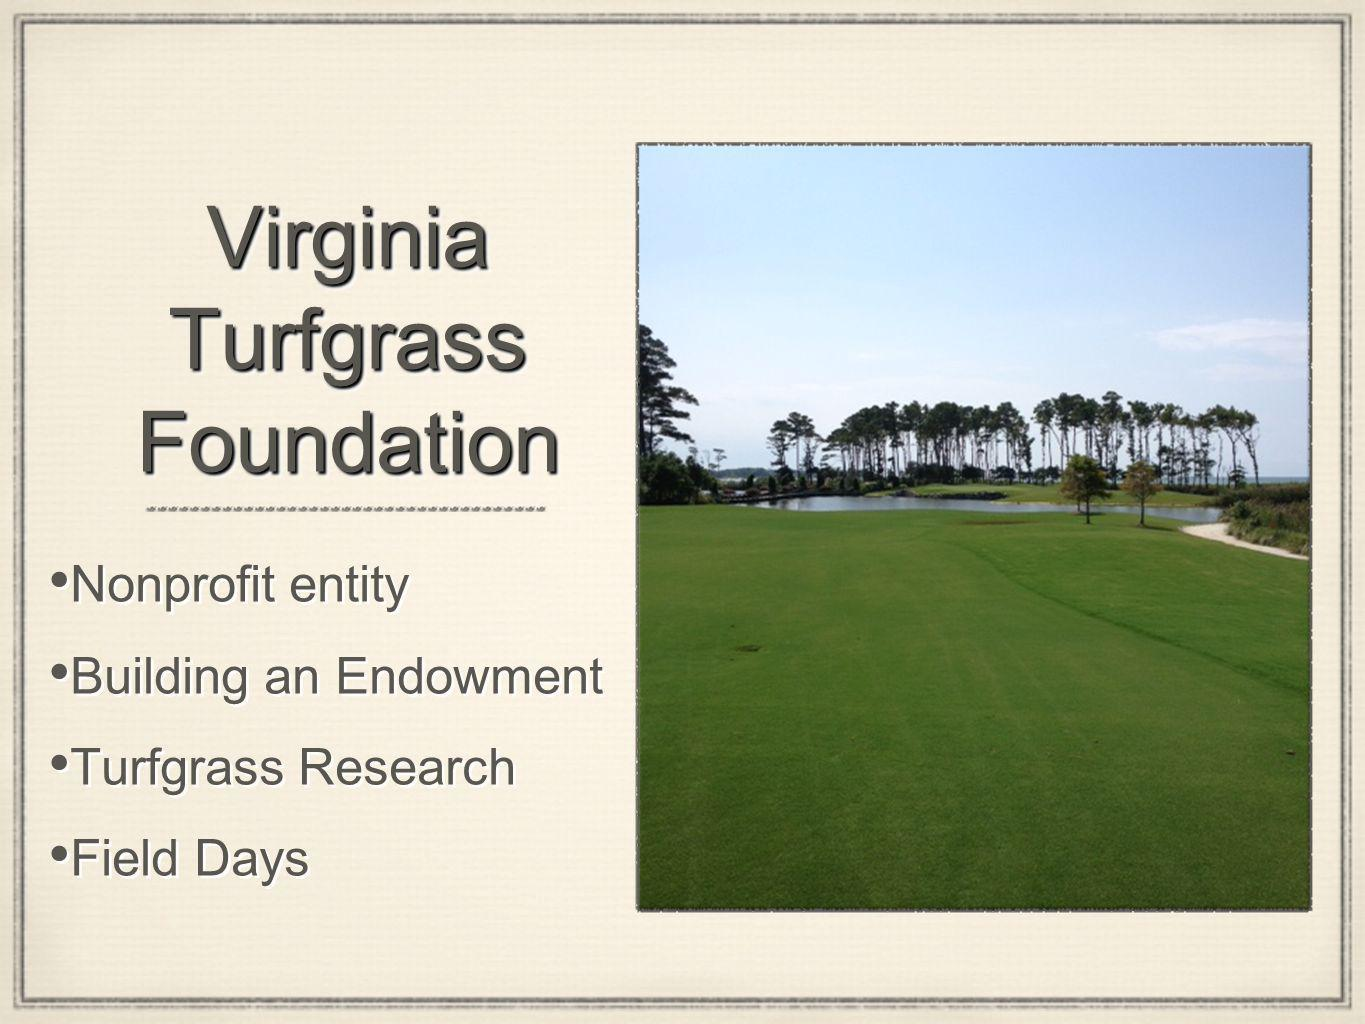 Virginia Turfgrass Foundation Nonprofit entity Building an Endowment Turfgrass Research Field Days Nonprofit entity Building an Endowment Turfgrass Research Field Days